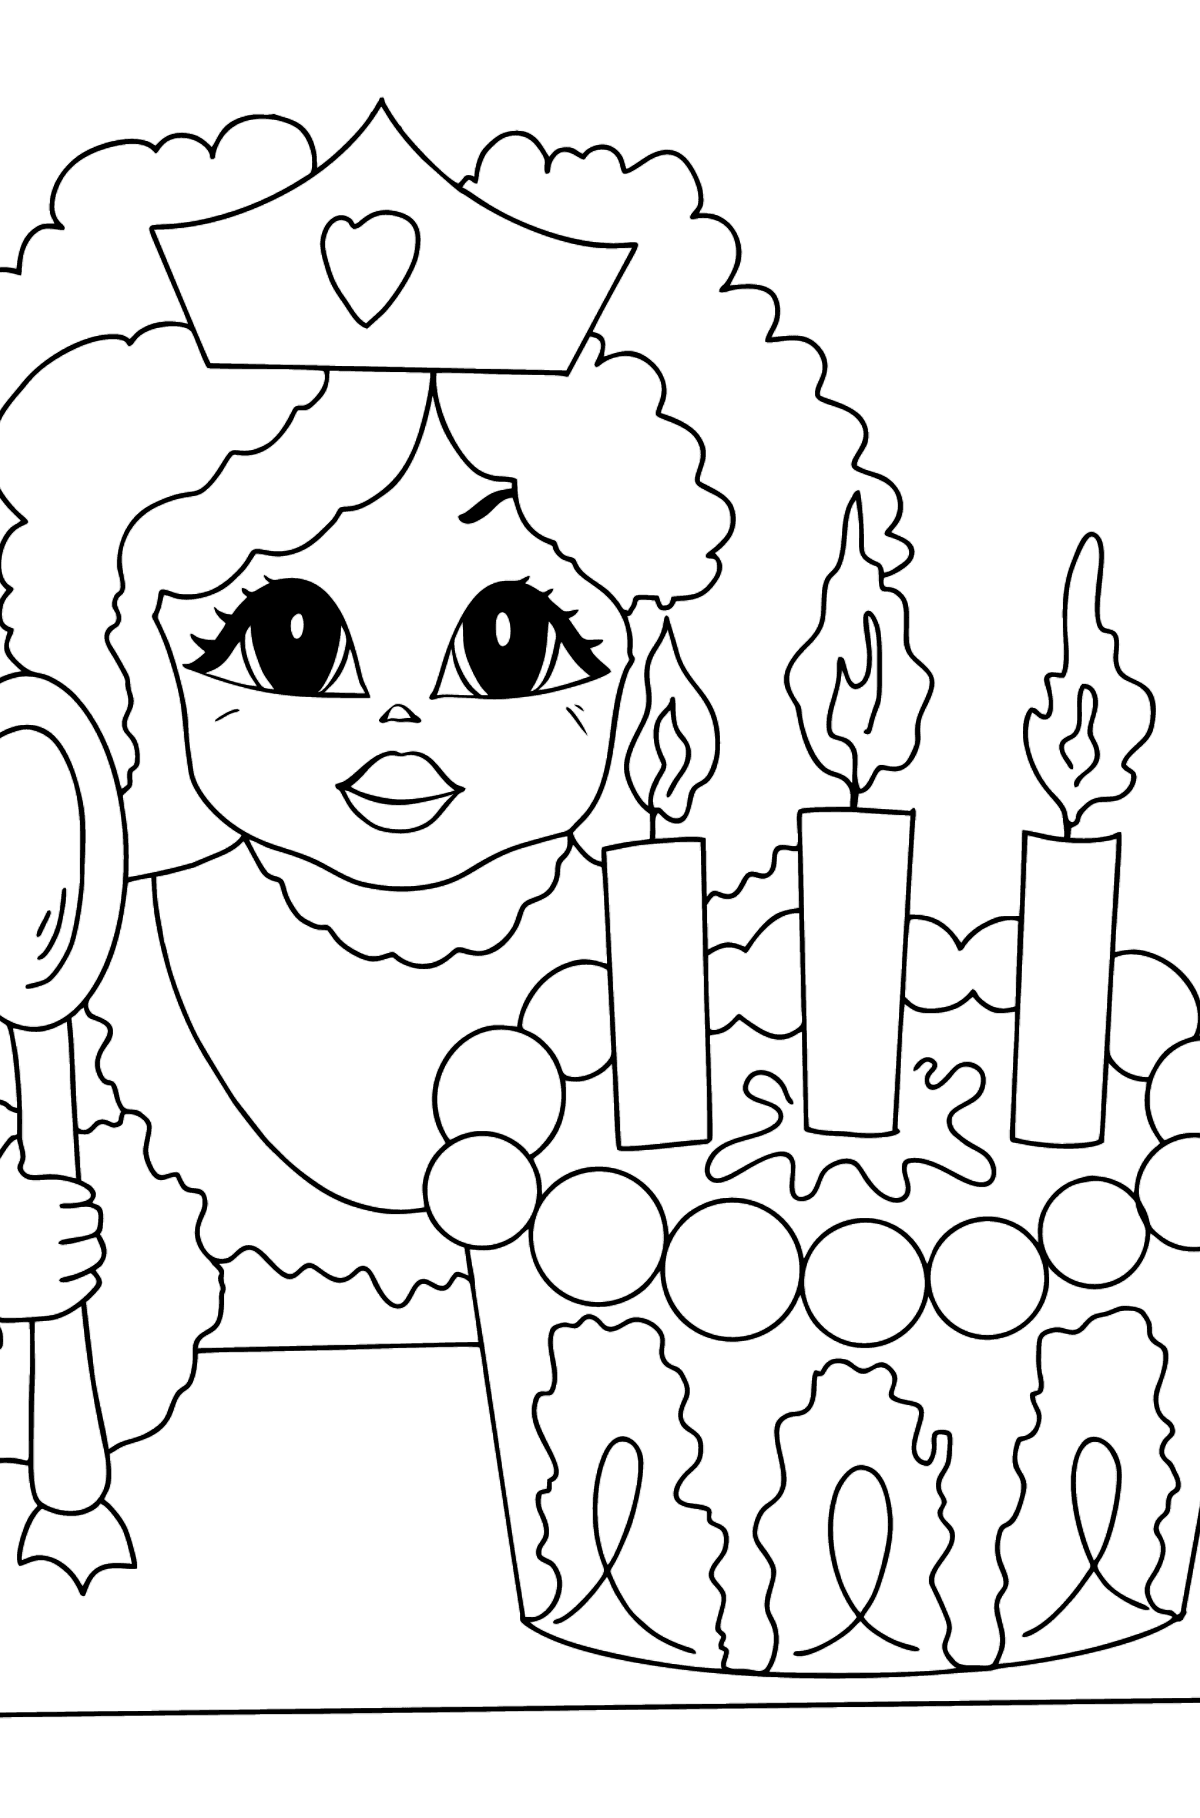 Coloring Page - A Princess with Cake - For Girls - Coloring Pages for Kids